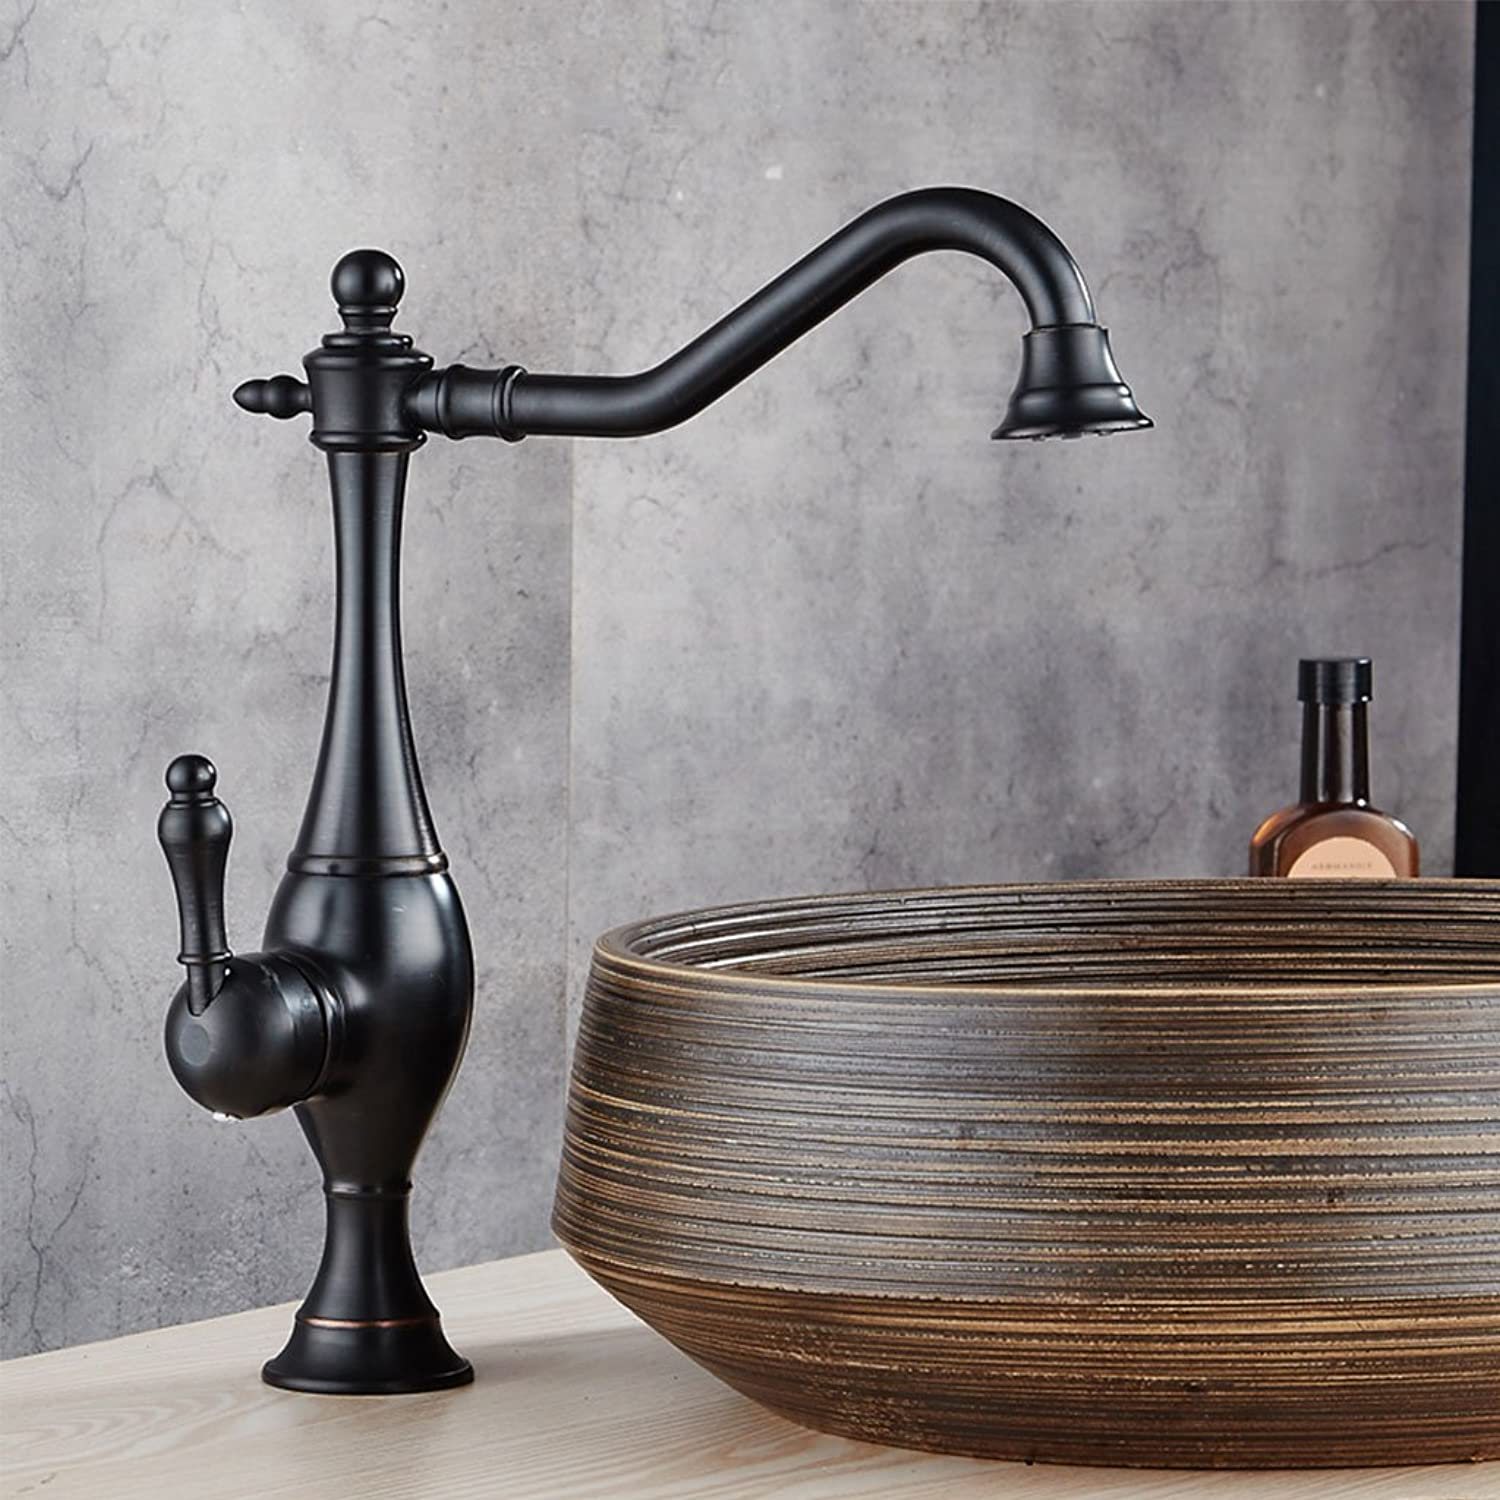 WYQLZ High-end Fashion European Retro Basin Mixer Fine Copper Creative Antique Hot And Cold Faucet ( color   B )